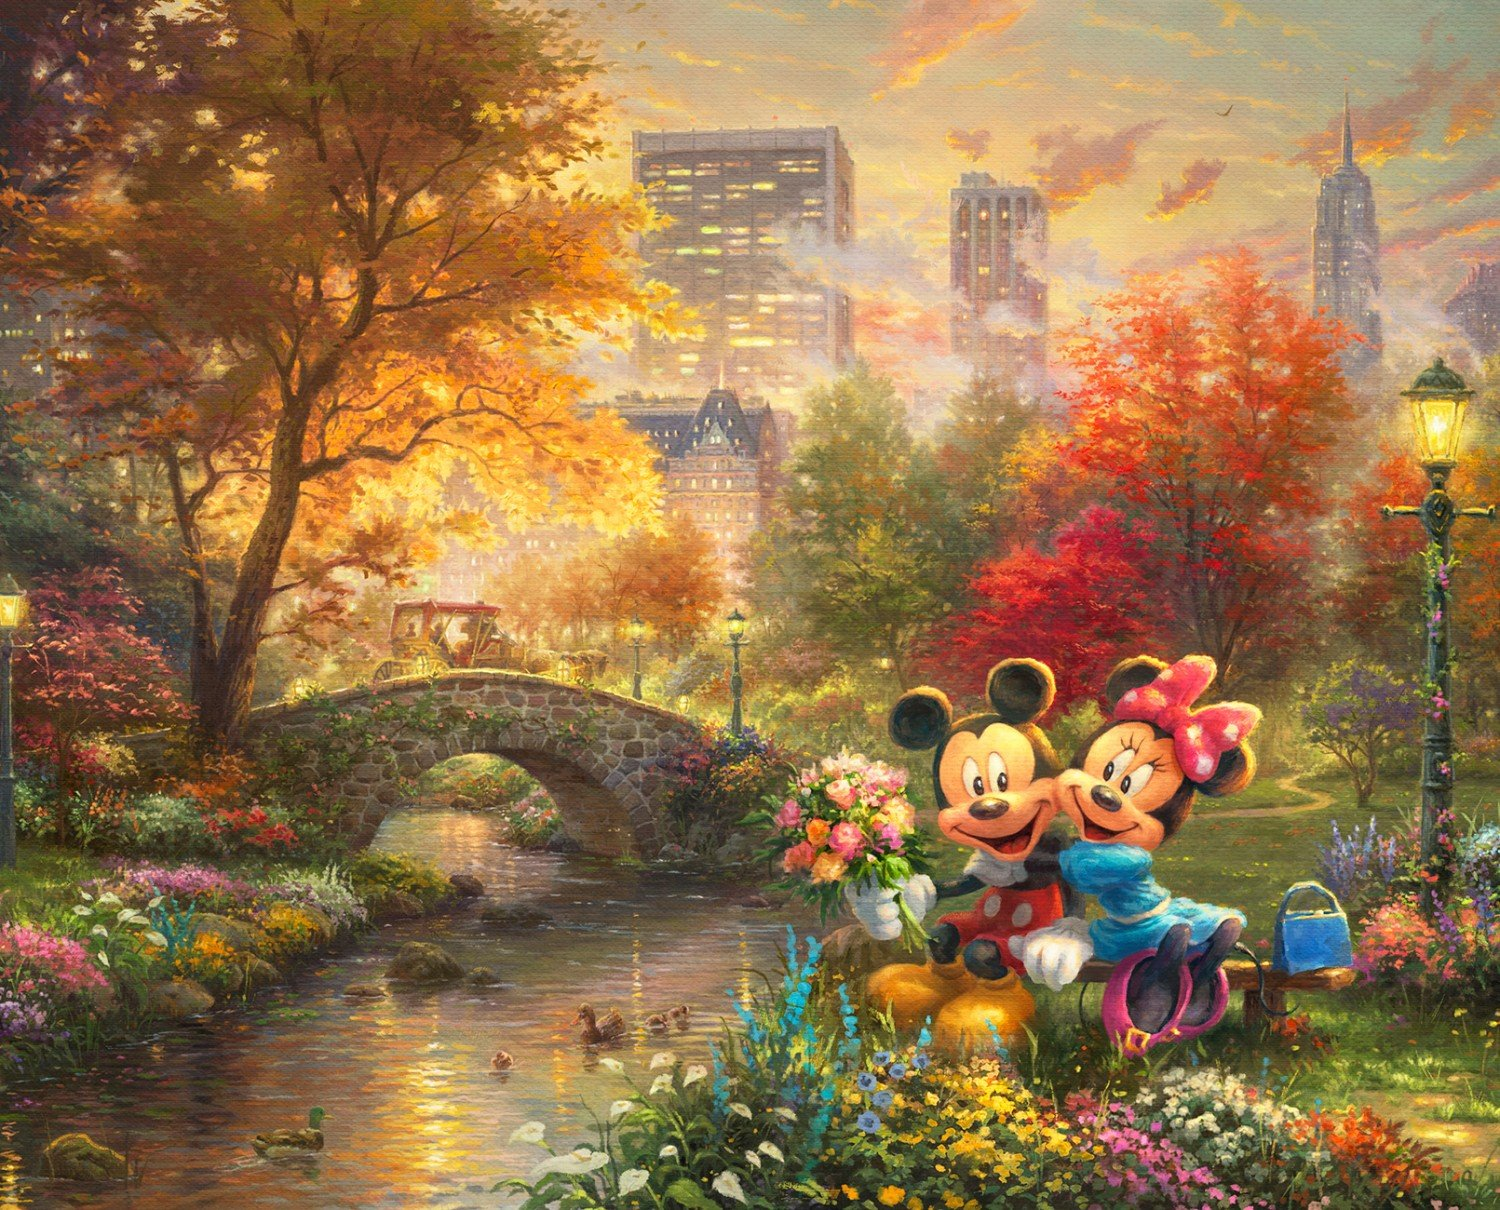 Mickey and Minnie Children's Fabric Panel Disney Dreams In Central Park 36 x 44 Inches